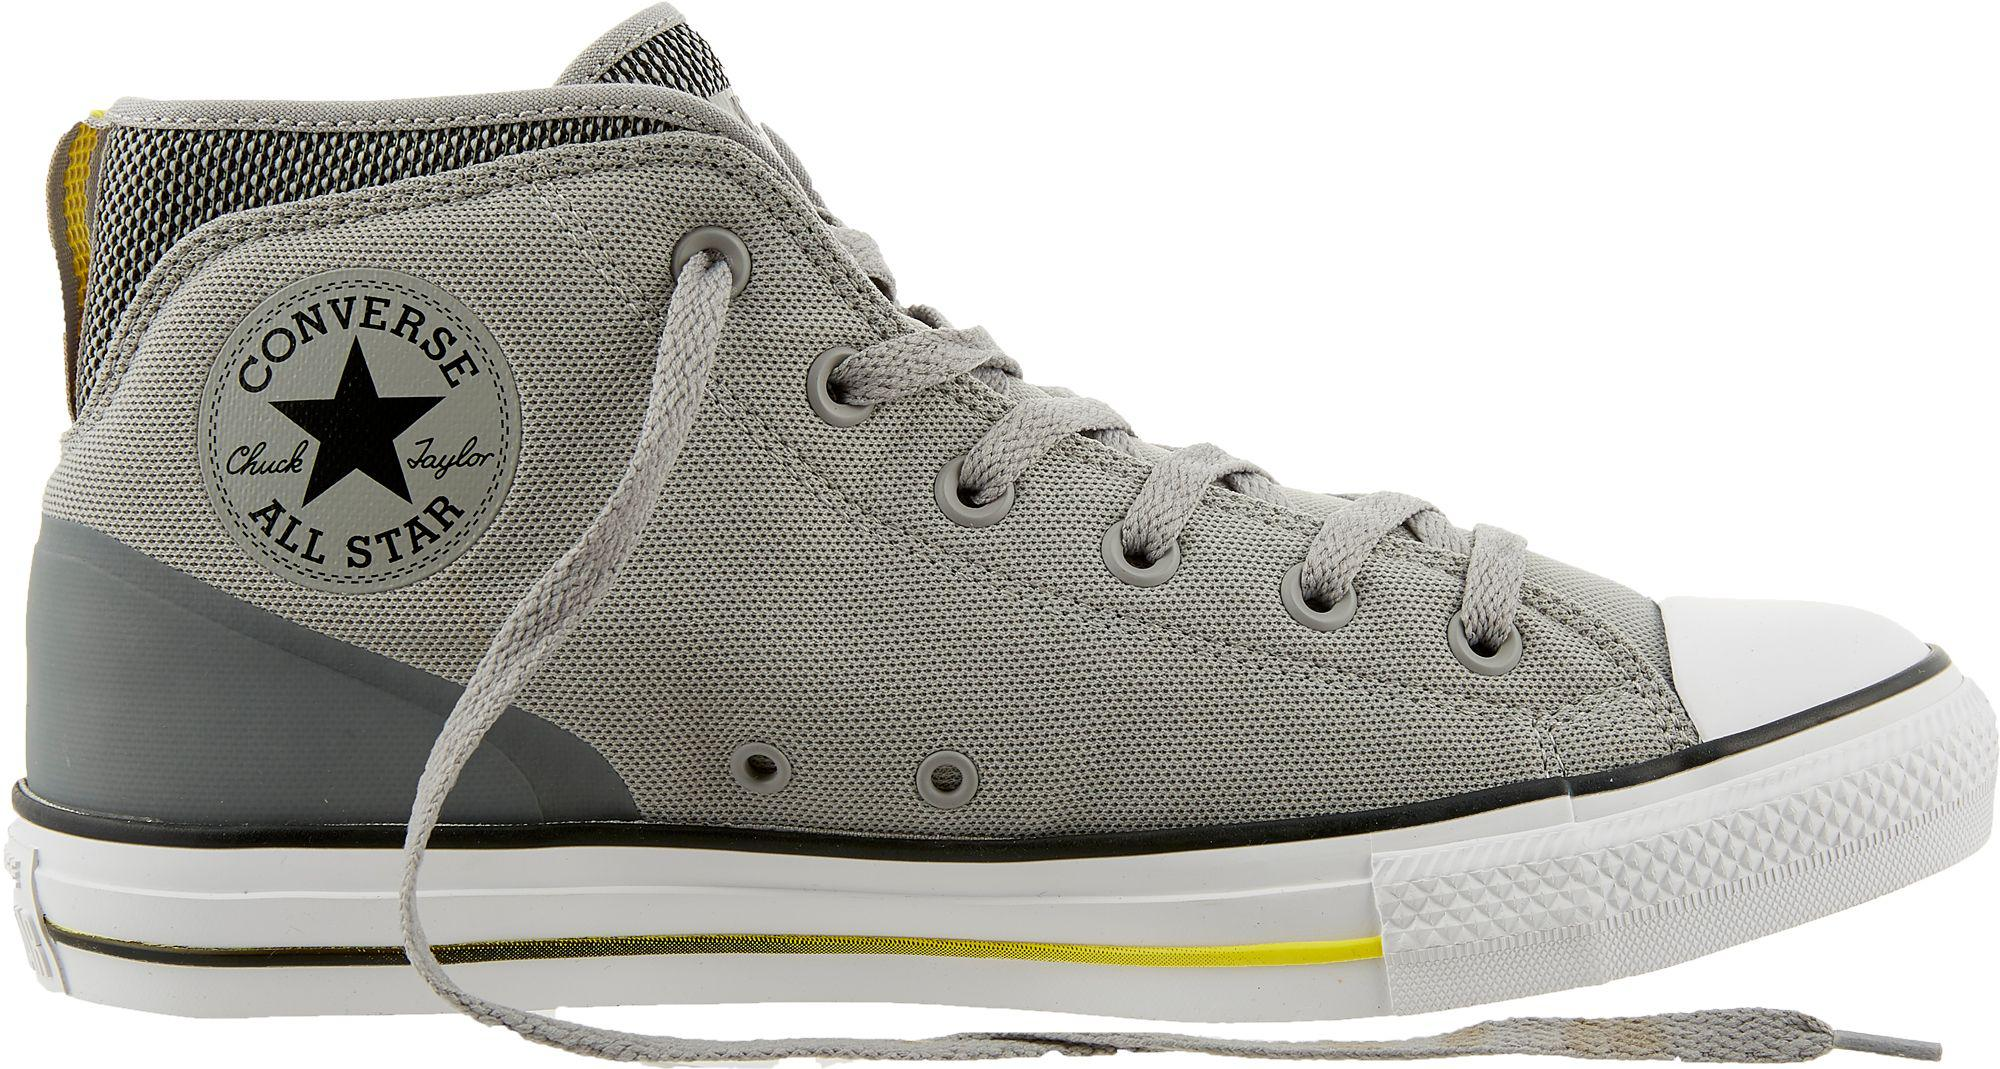 15fb35a6bd6 Lyst - Converse Chuck Taylor All Star Syde Street Mid-top Casual ...